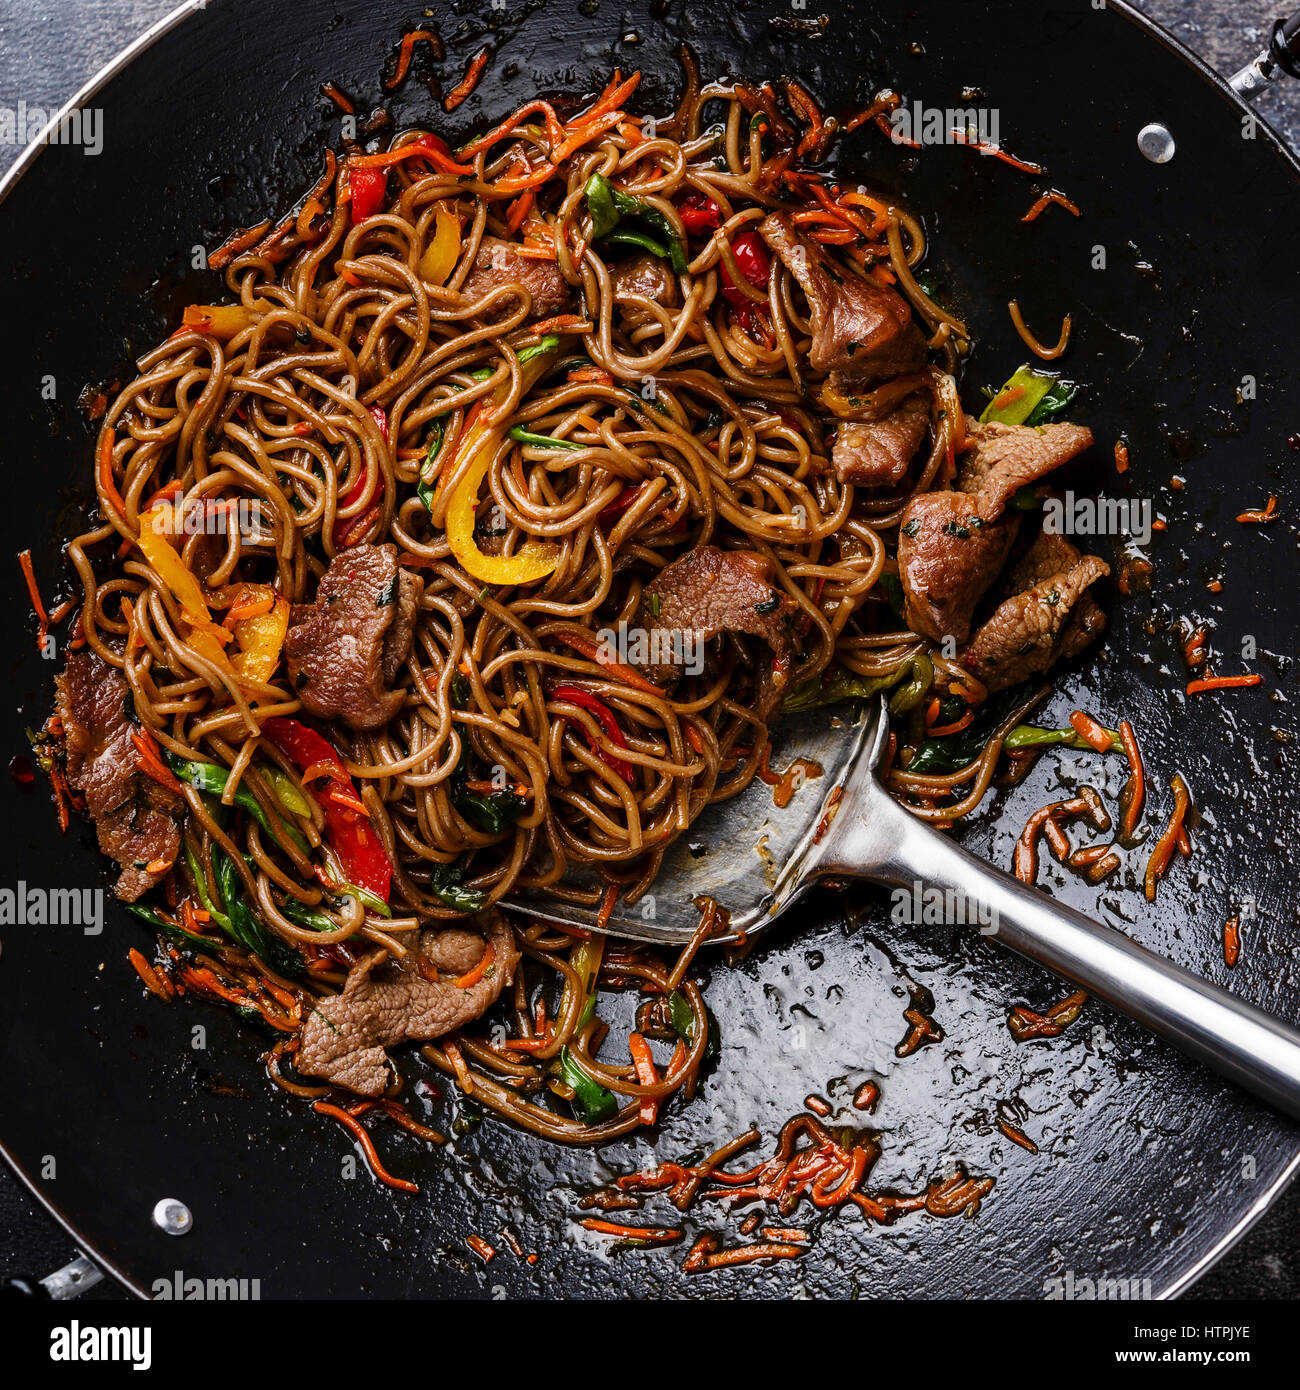 Stir fry soba noodles with beef and vegetables in wok pan close up - Stock Image